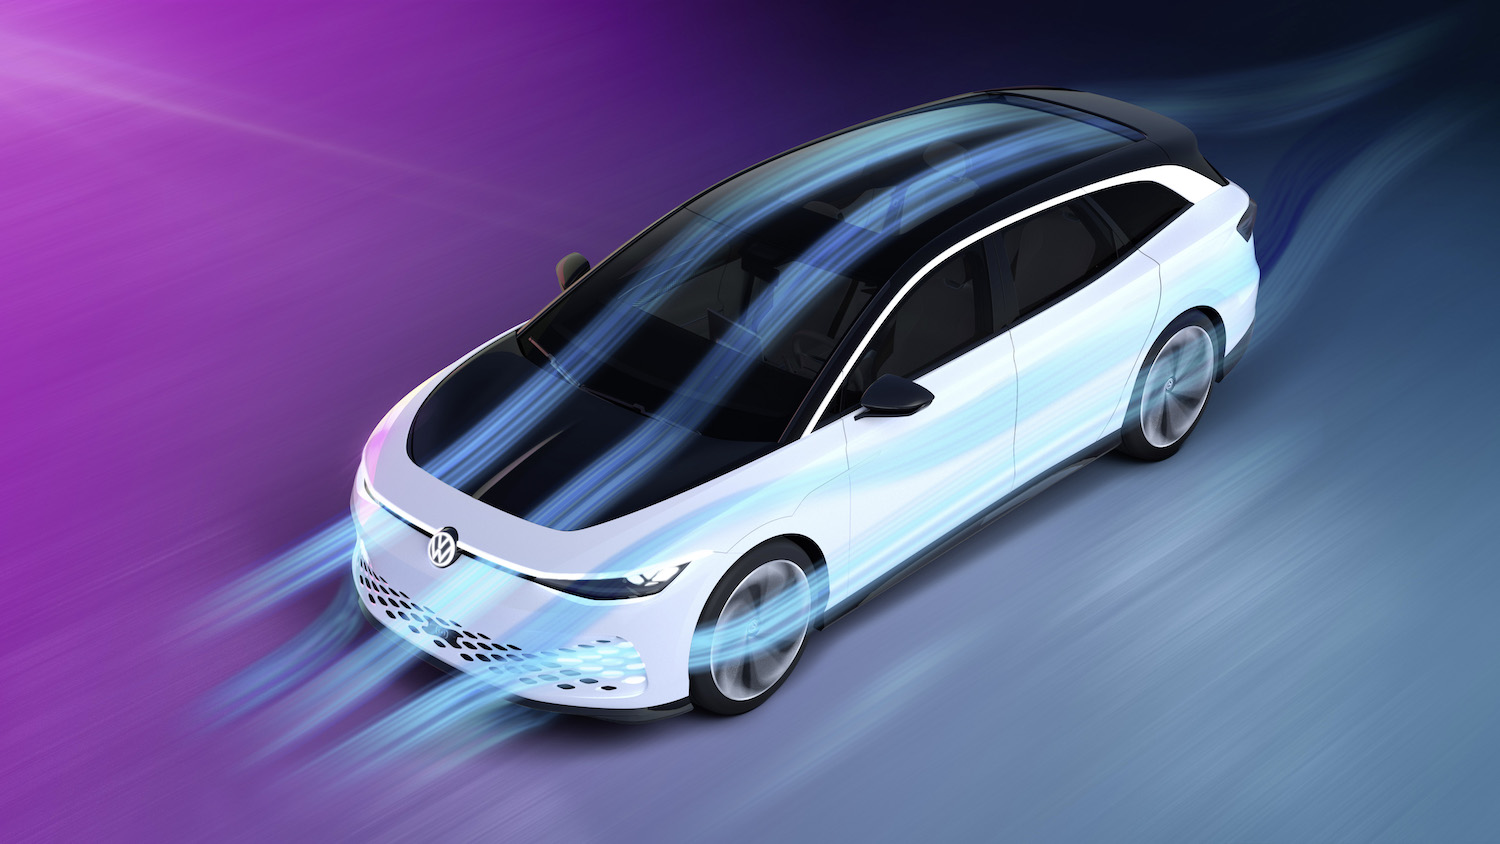 VW ID space vizzion concept electric vehicle aerodynamics